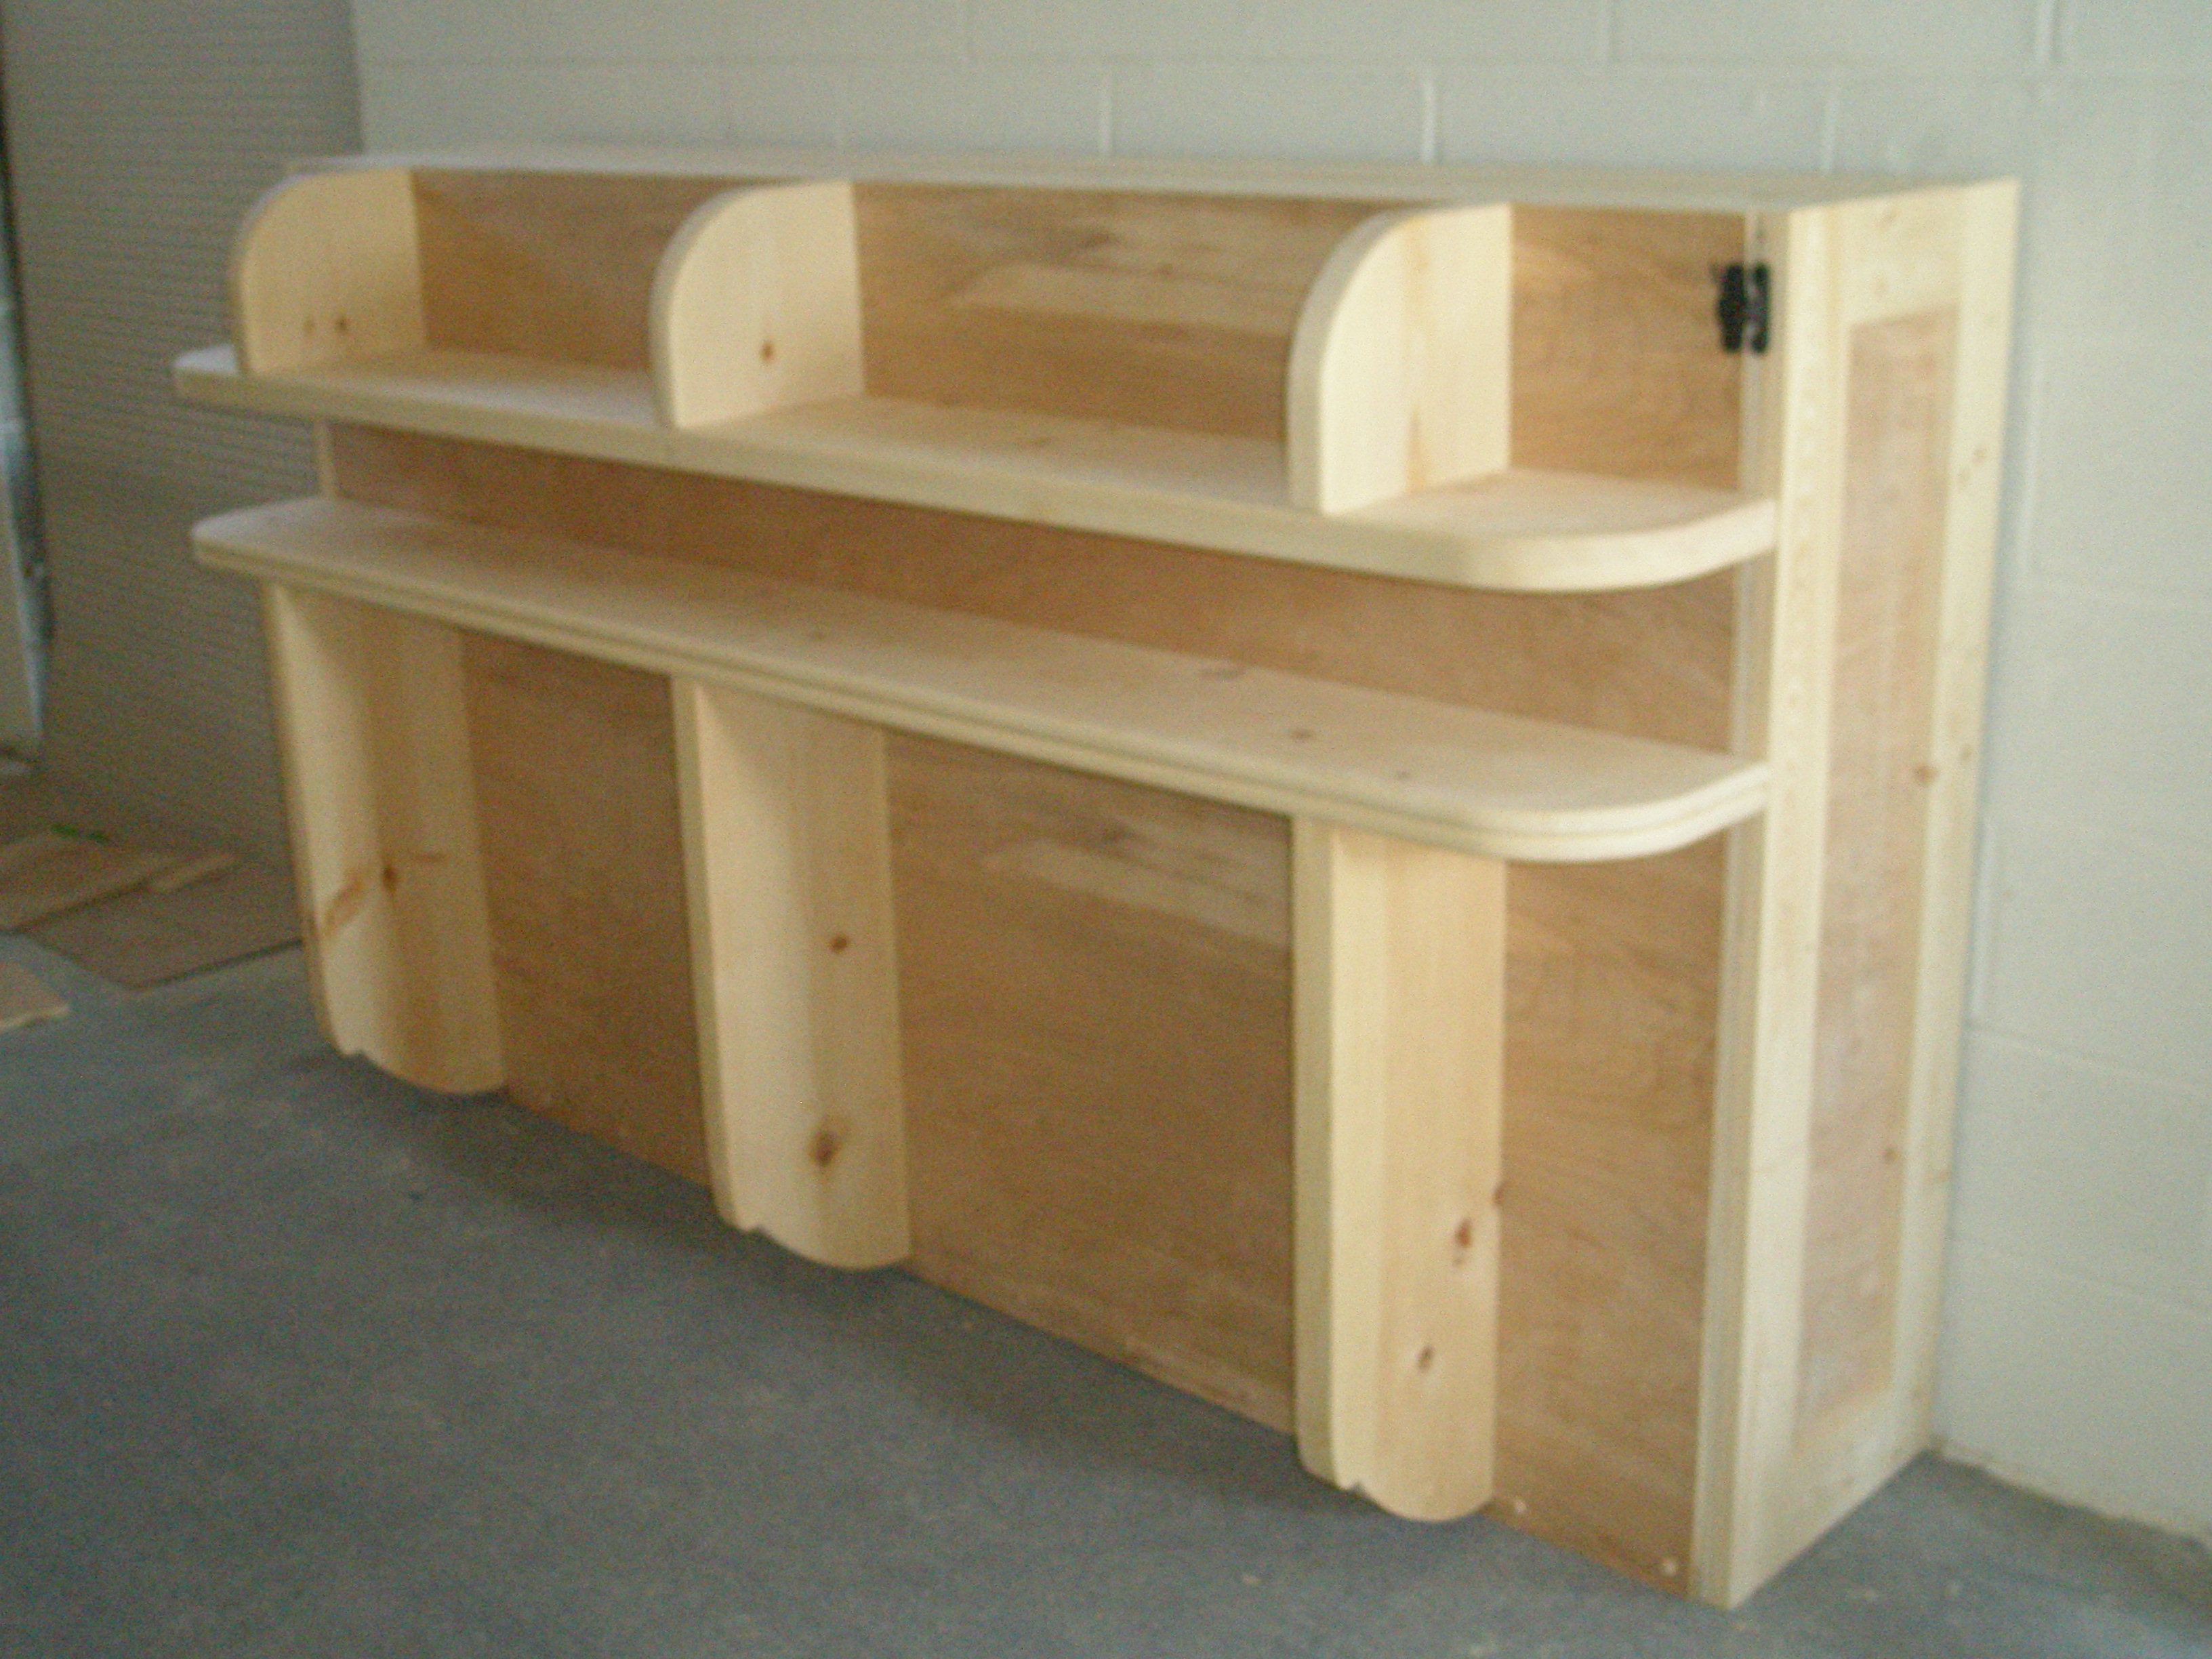 ... Joiners Bench Plans | Murphy Bed Plans Free indoor storage bench plans